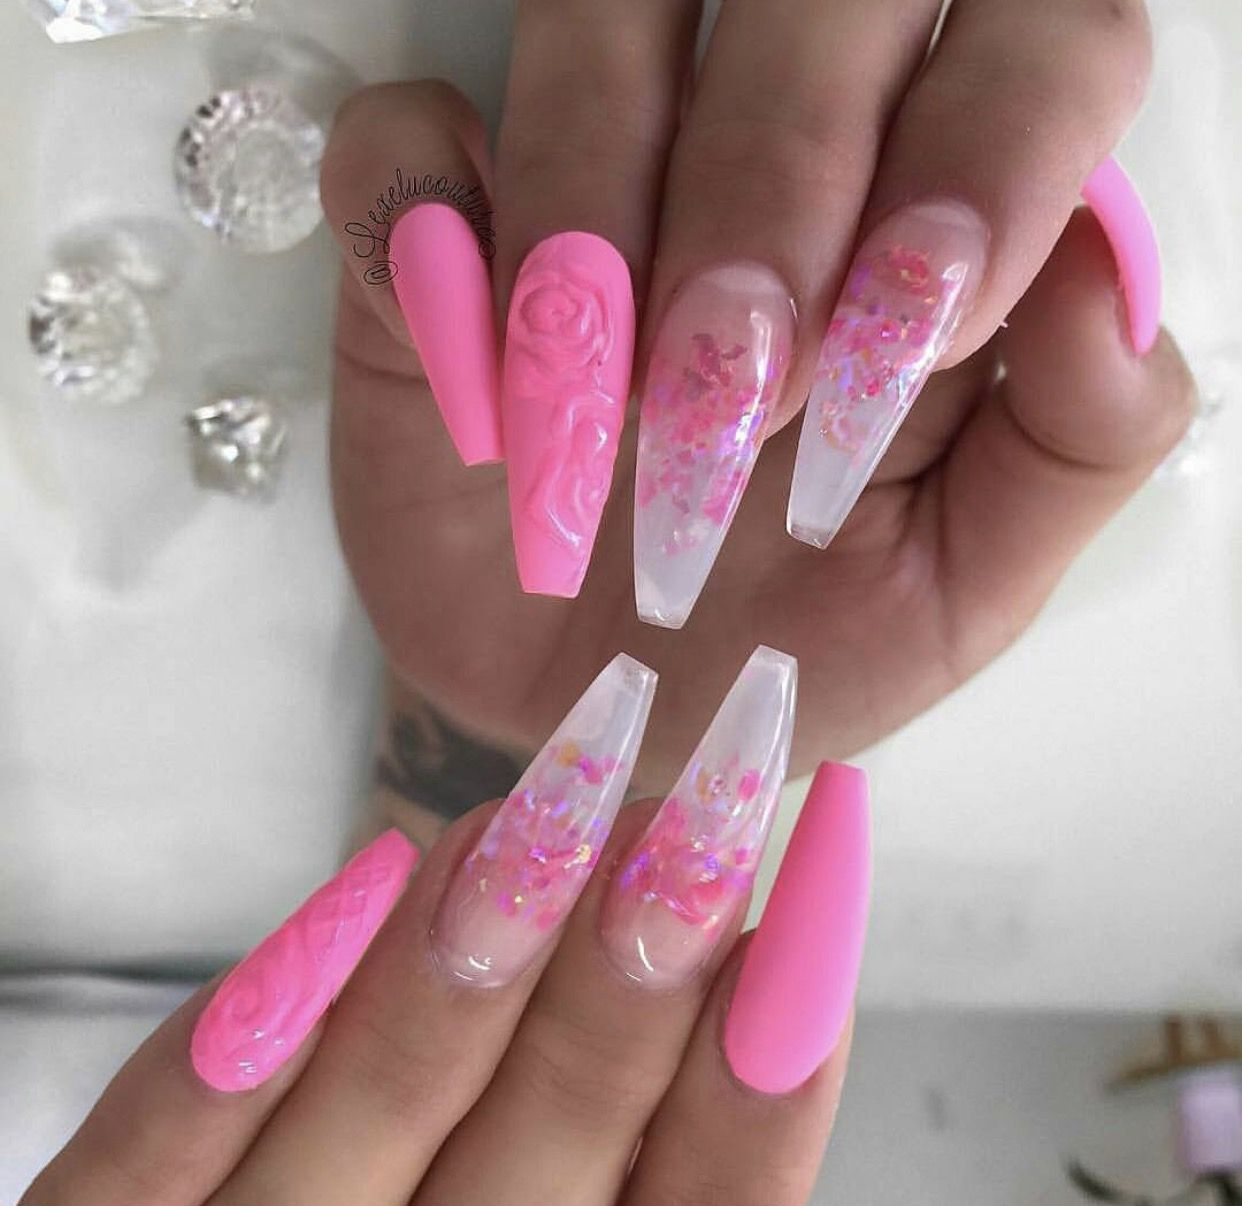 51 Really Cute Acrylic Nail Designs Youll Love | Page 3